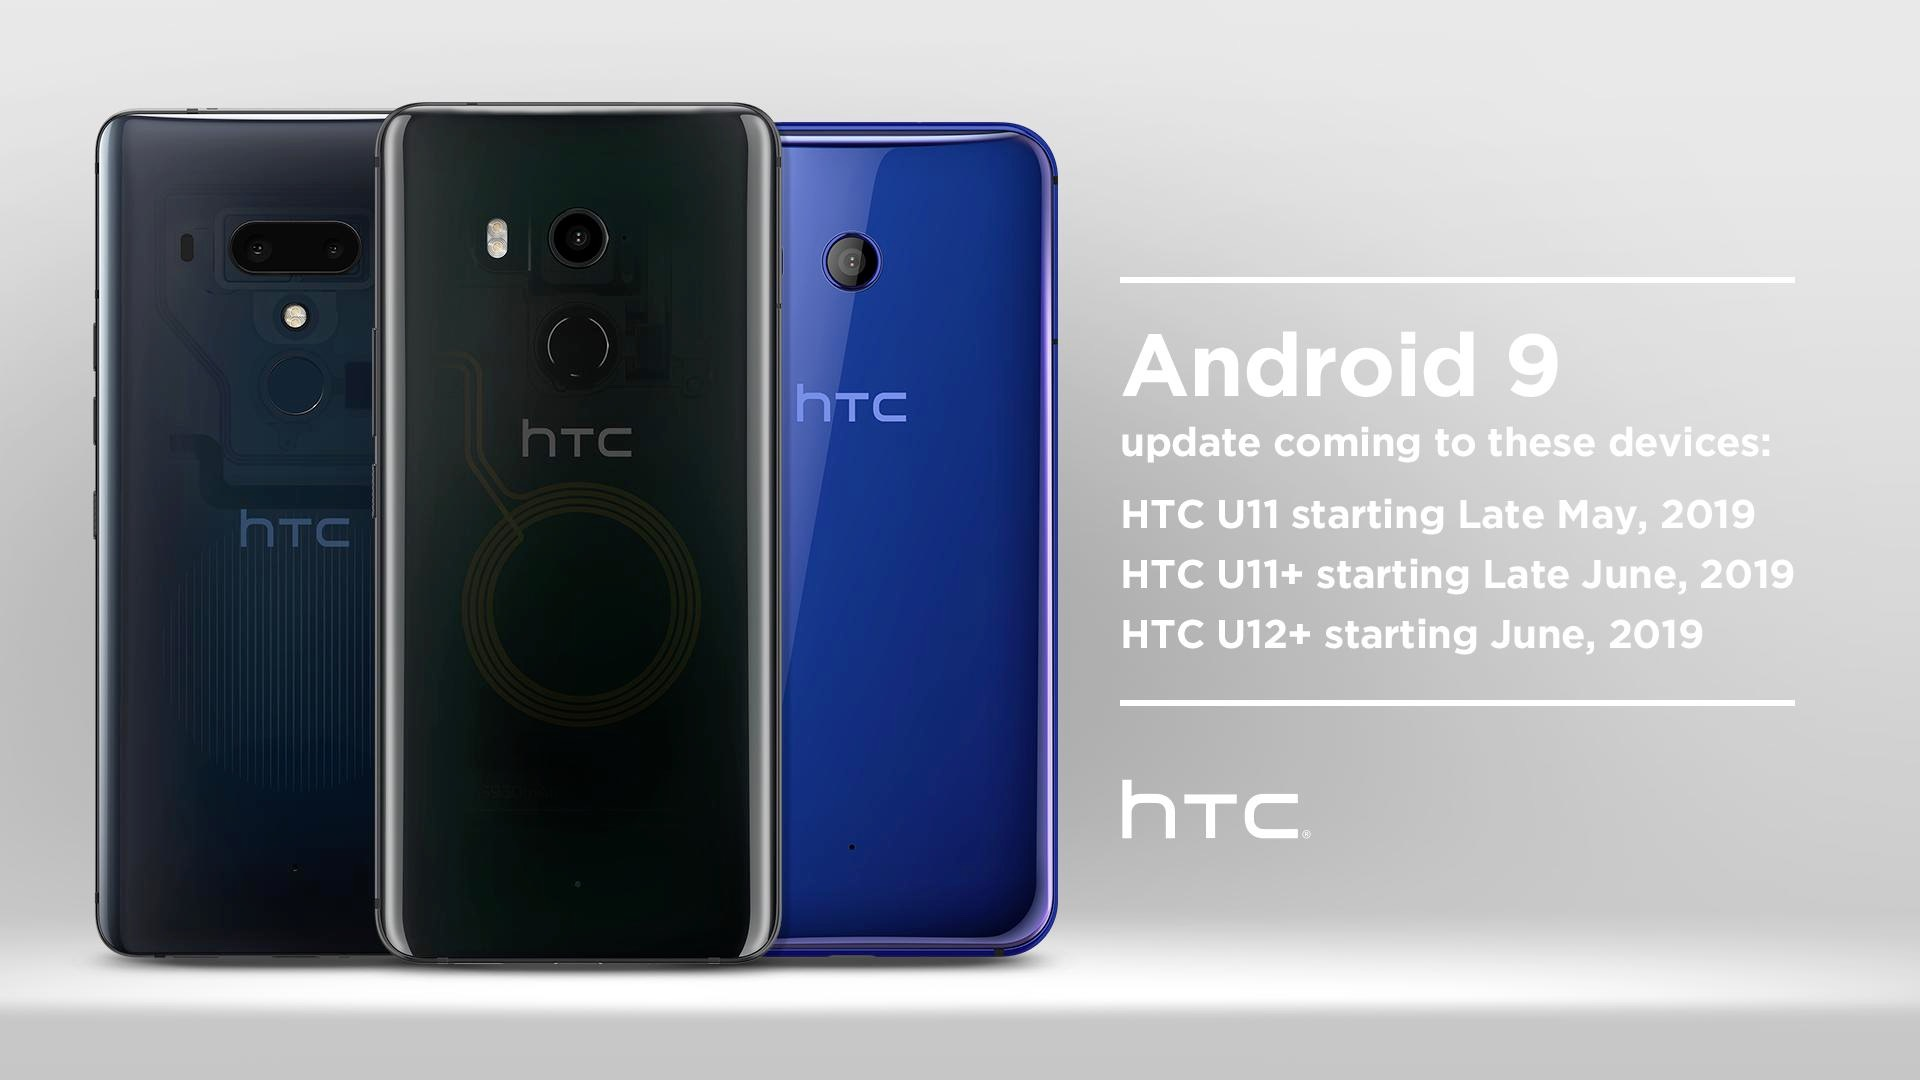 htc android 9.0